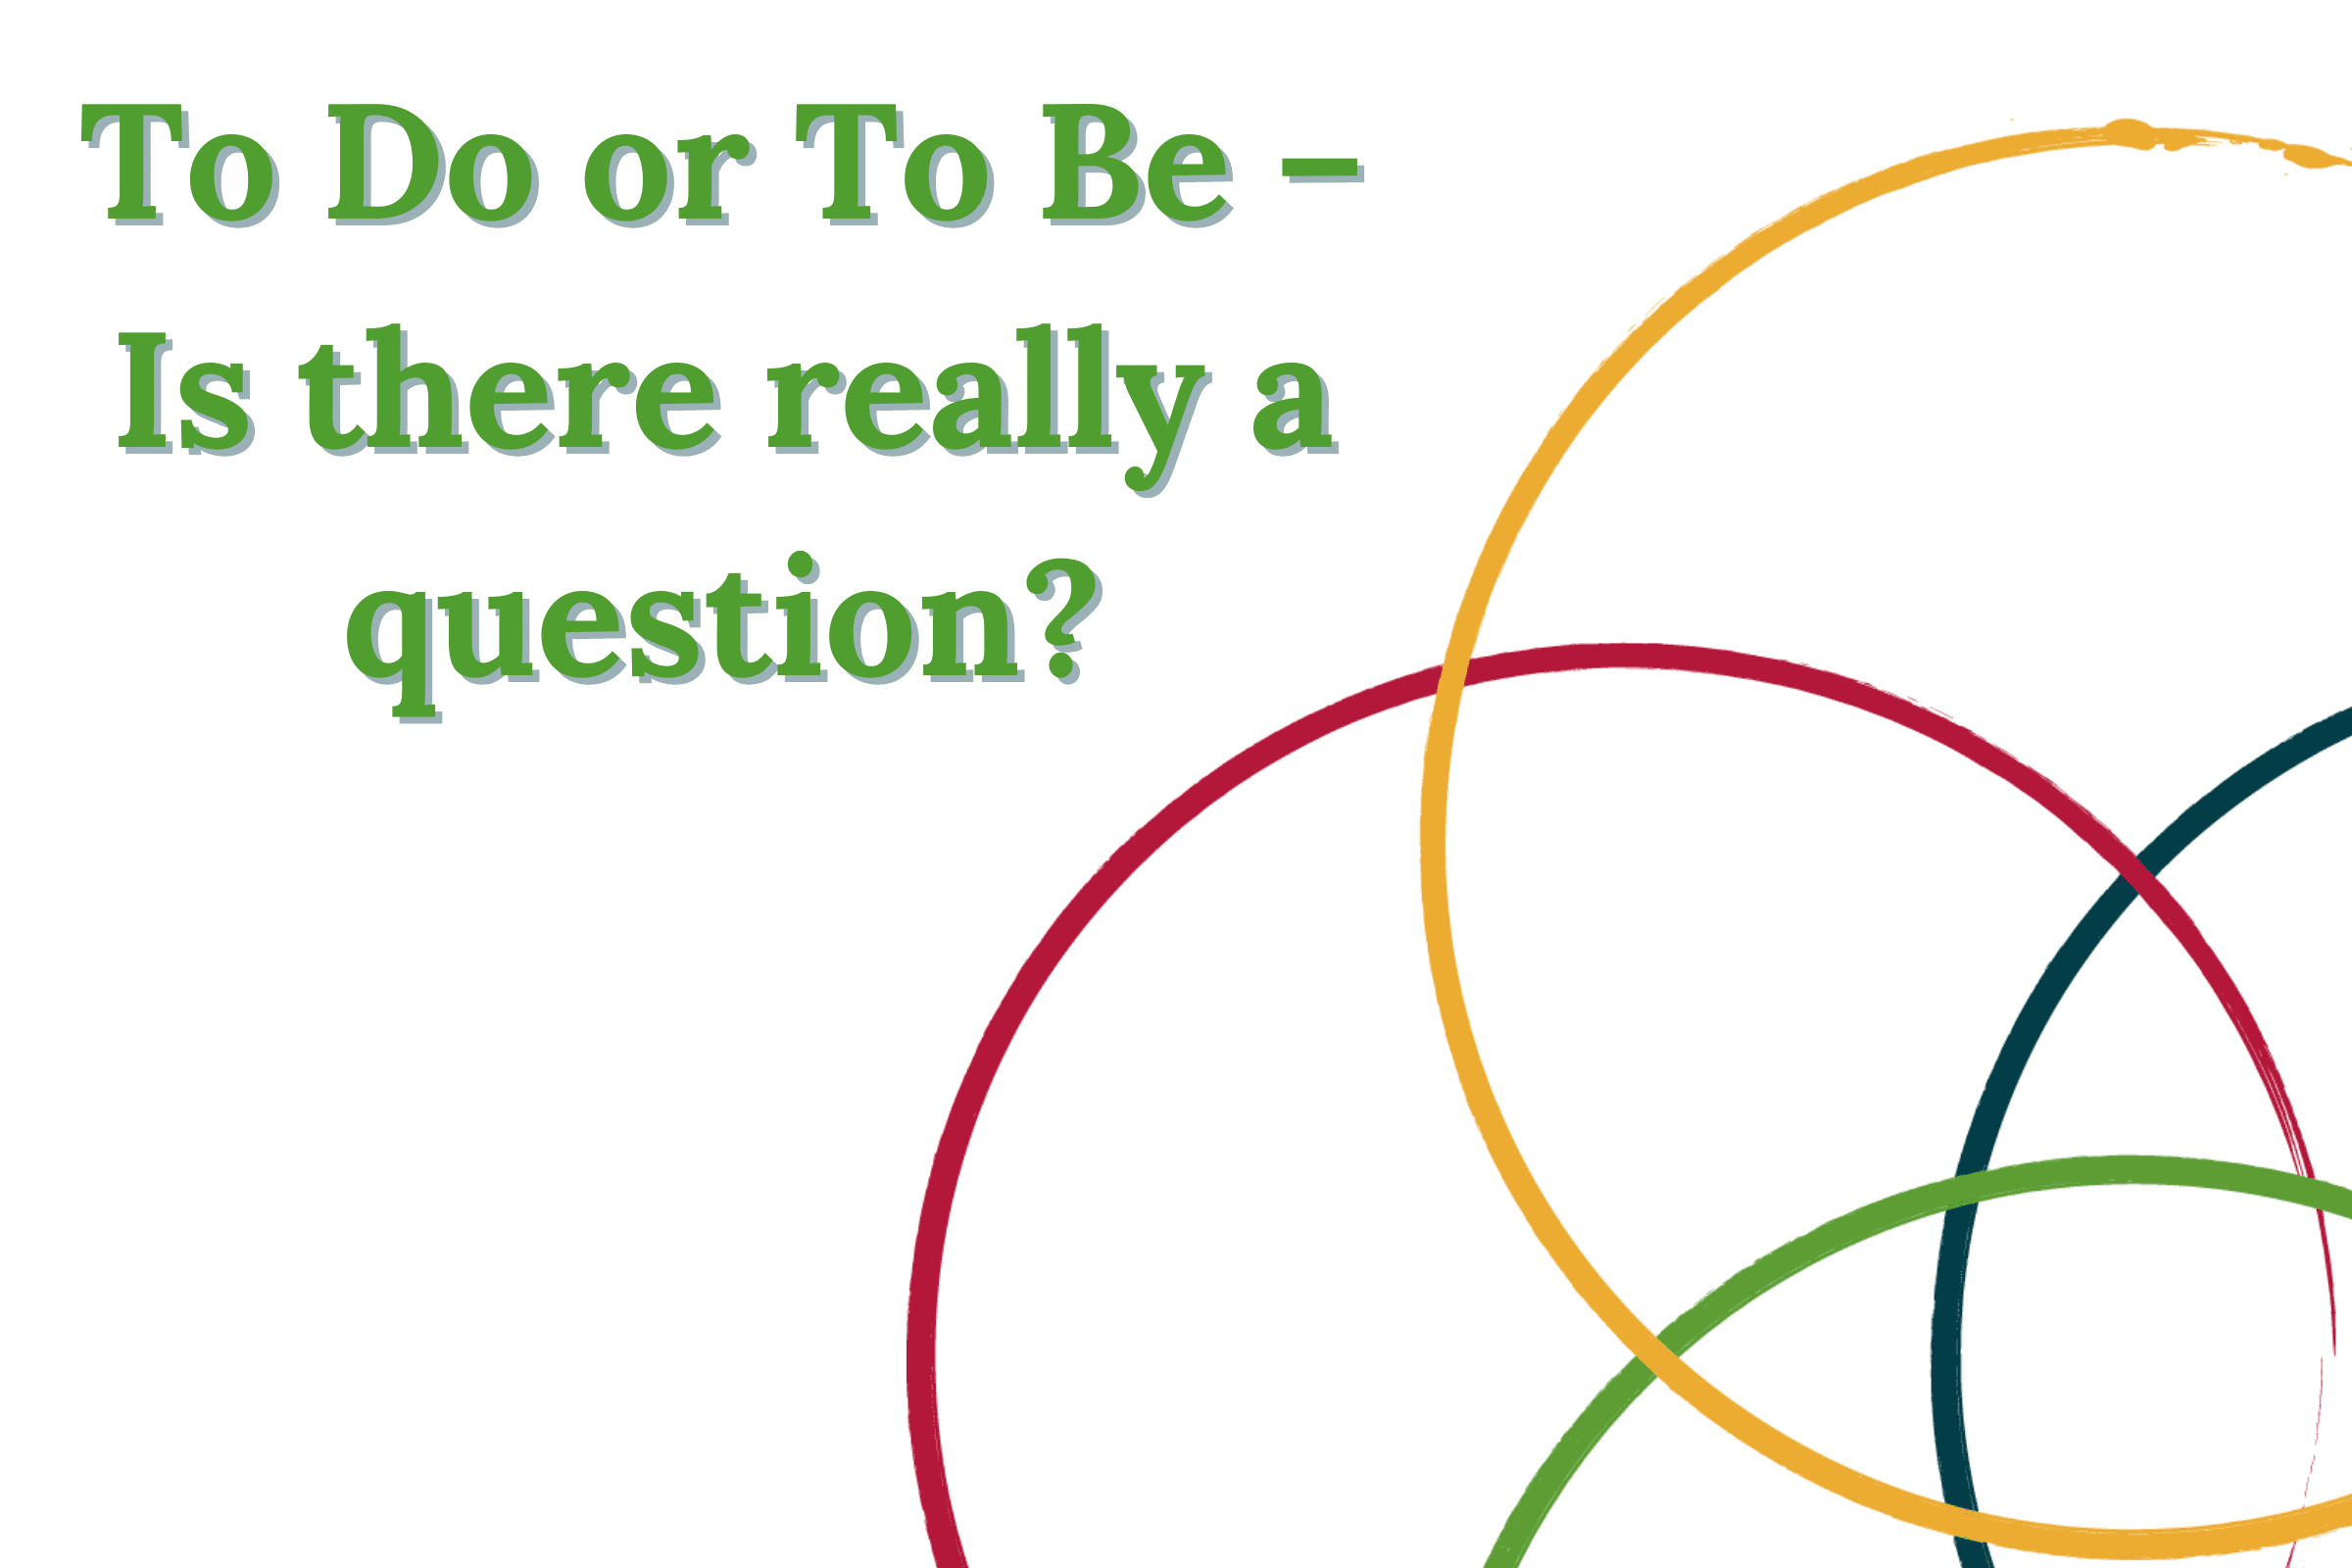 To be or not to be - is there even a question?